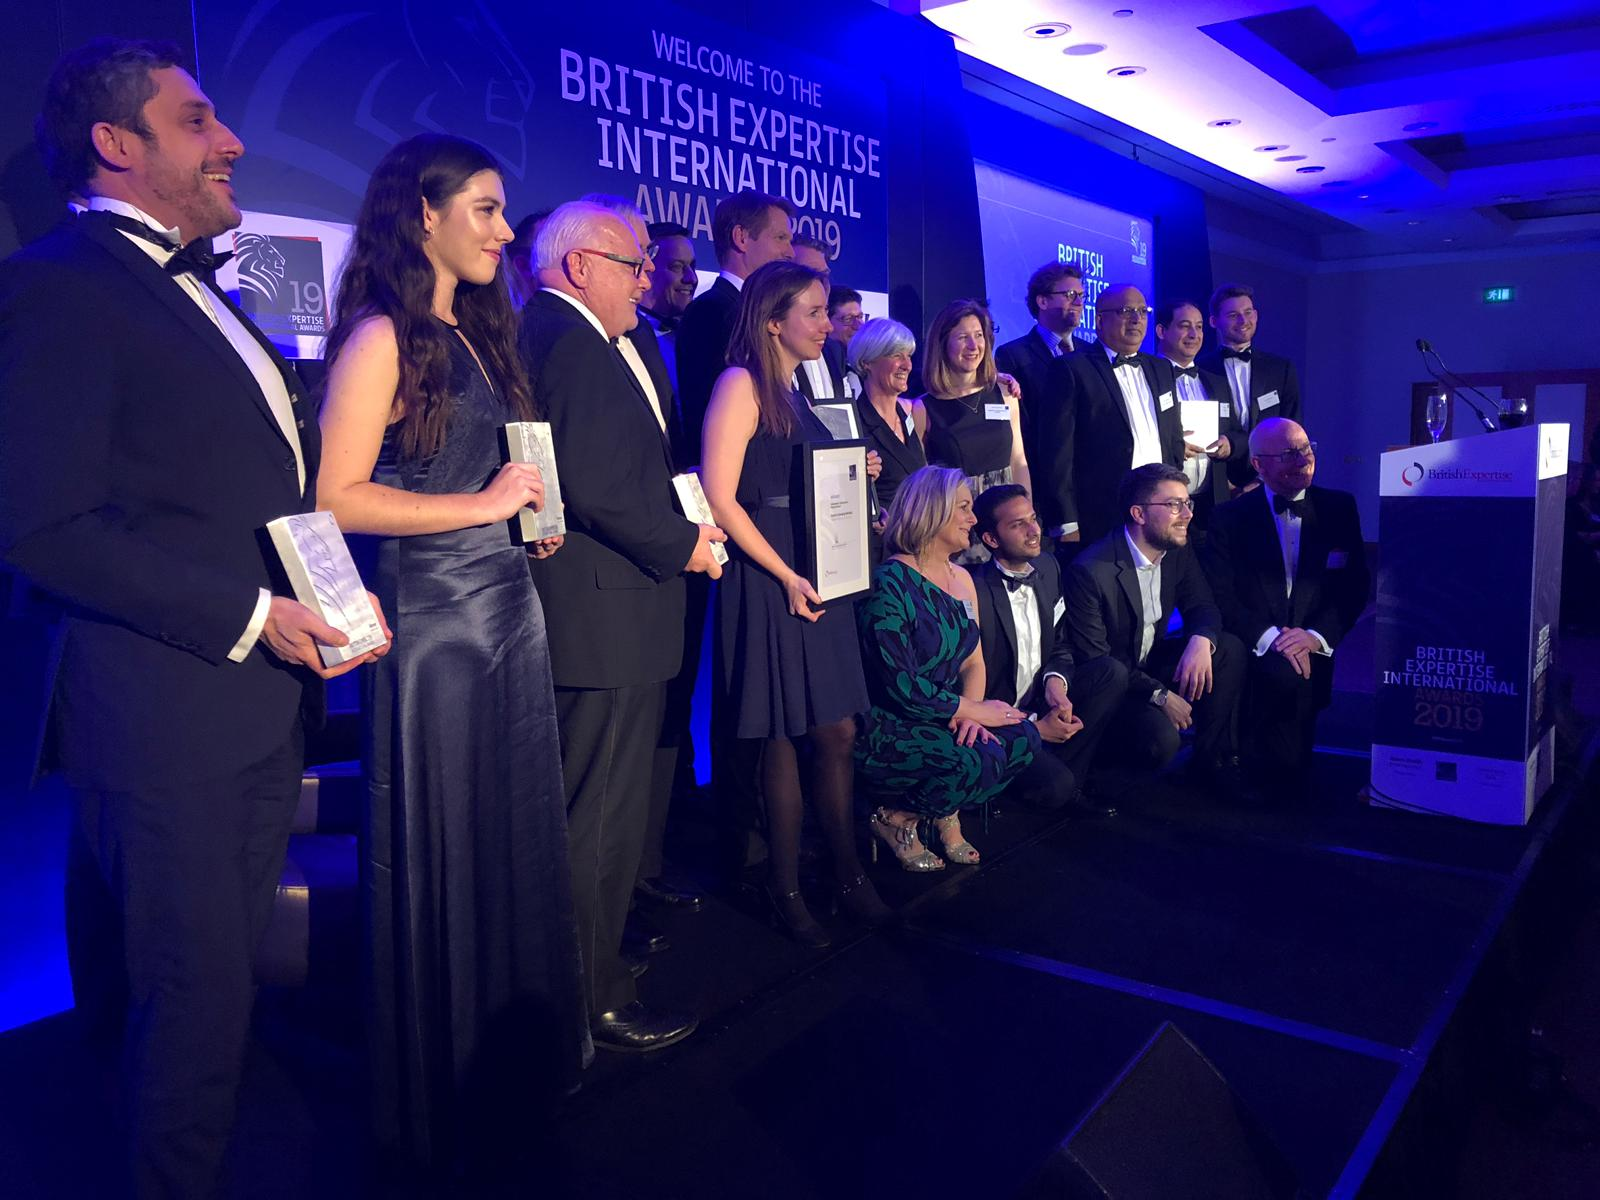 British Expertise International Awards – Winners!